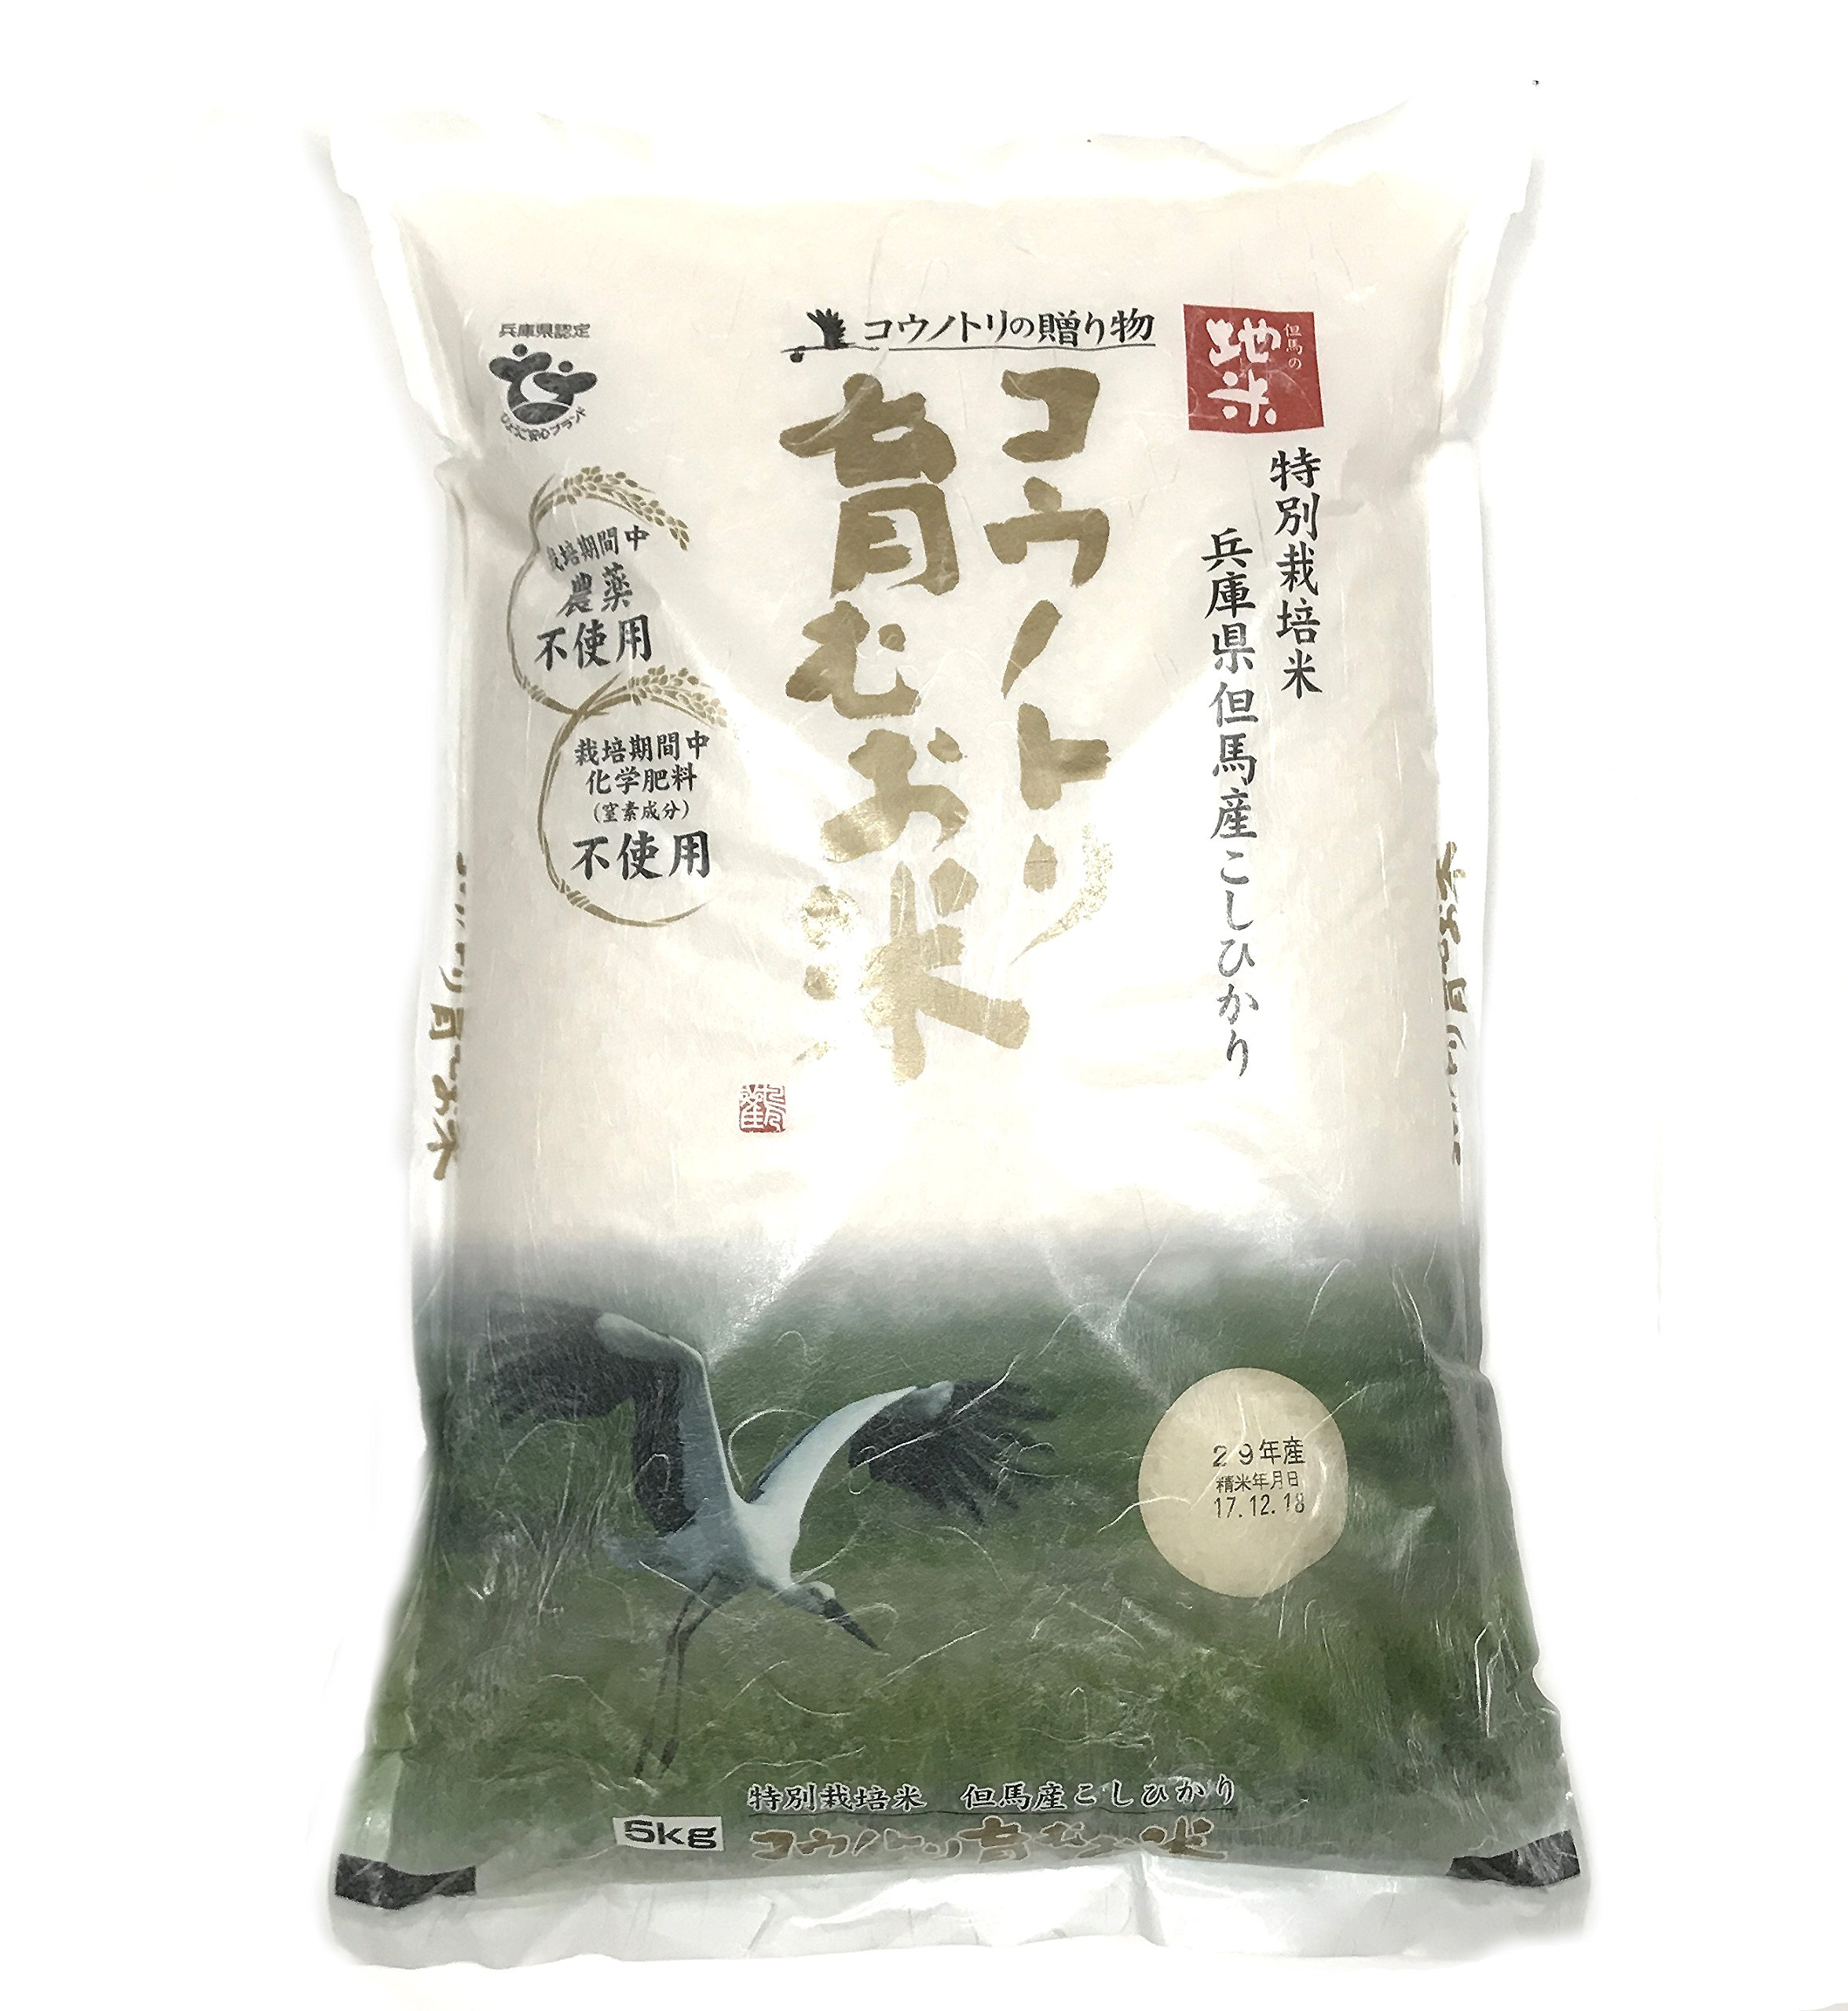 Product of Japan, Kounotori All Natural Koshihikari Rice, Extremely Rare And Premium | 11Lb